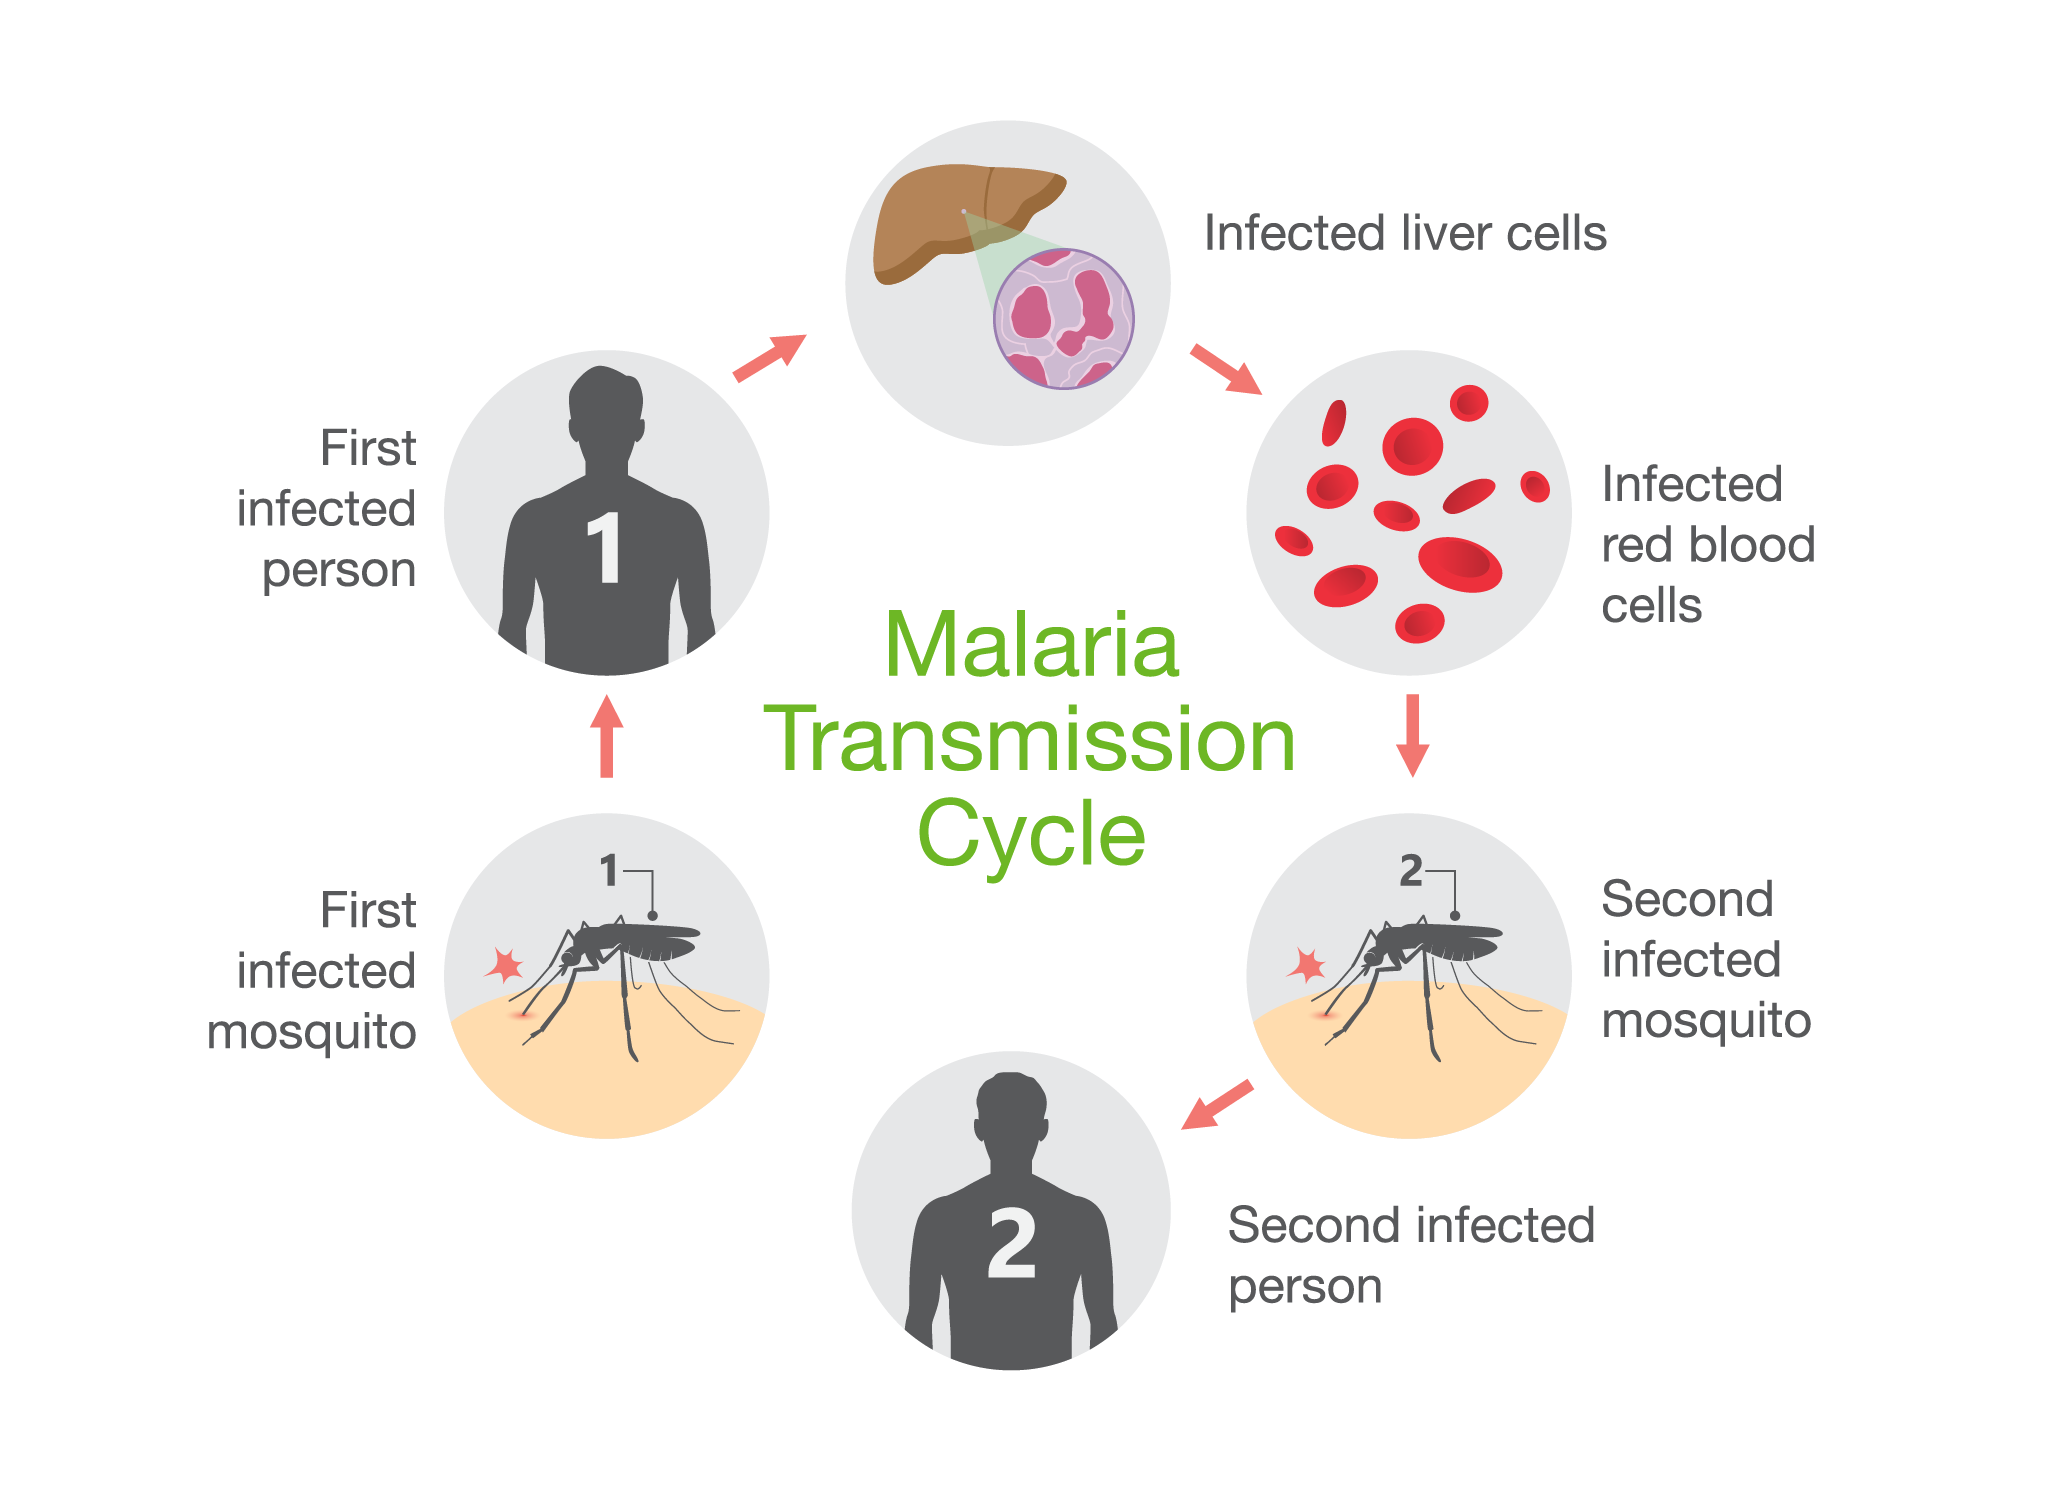 Malaria transmission cycle means that creating an effective malaria vaccine is incredibly complex